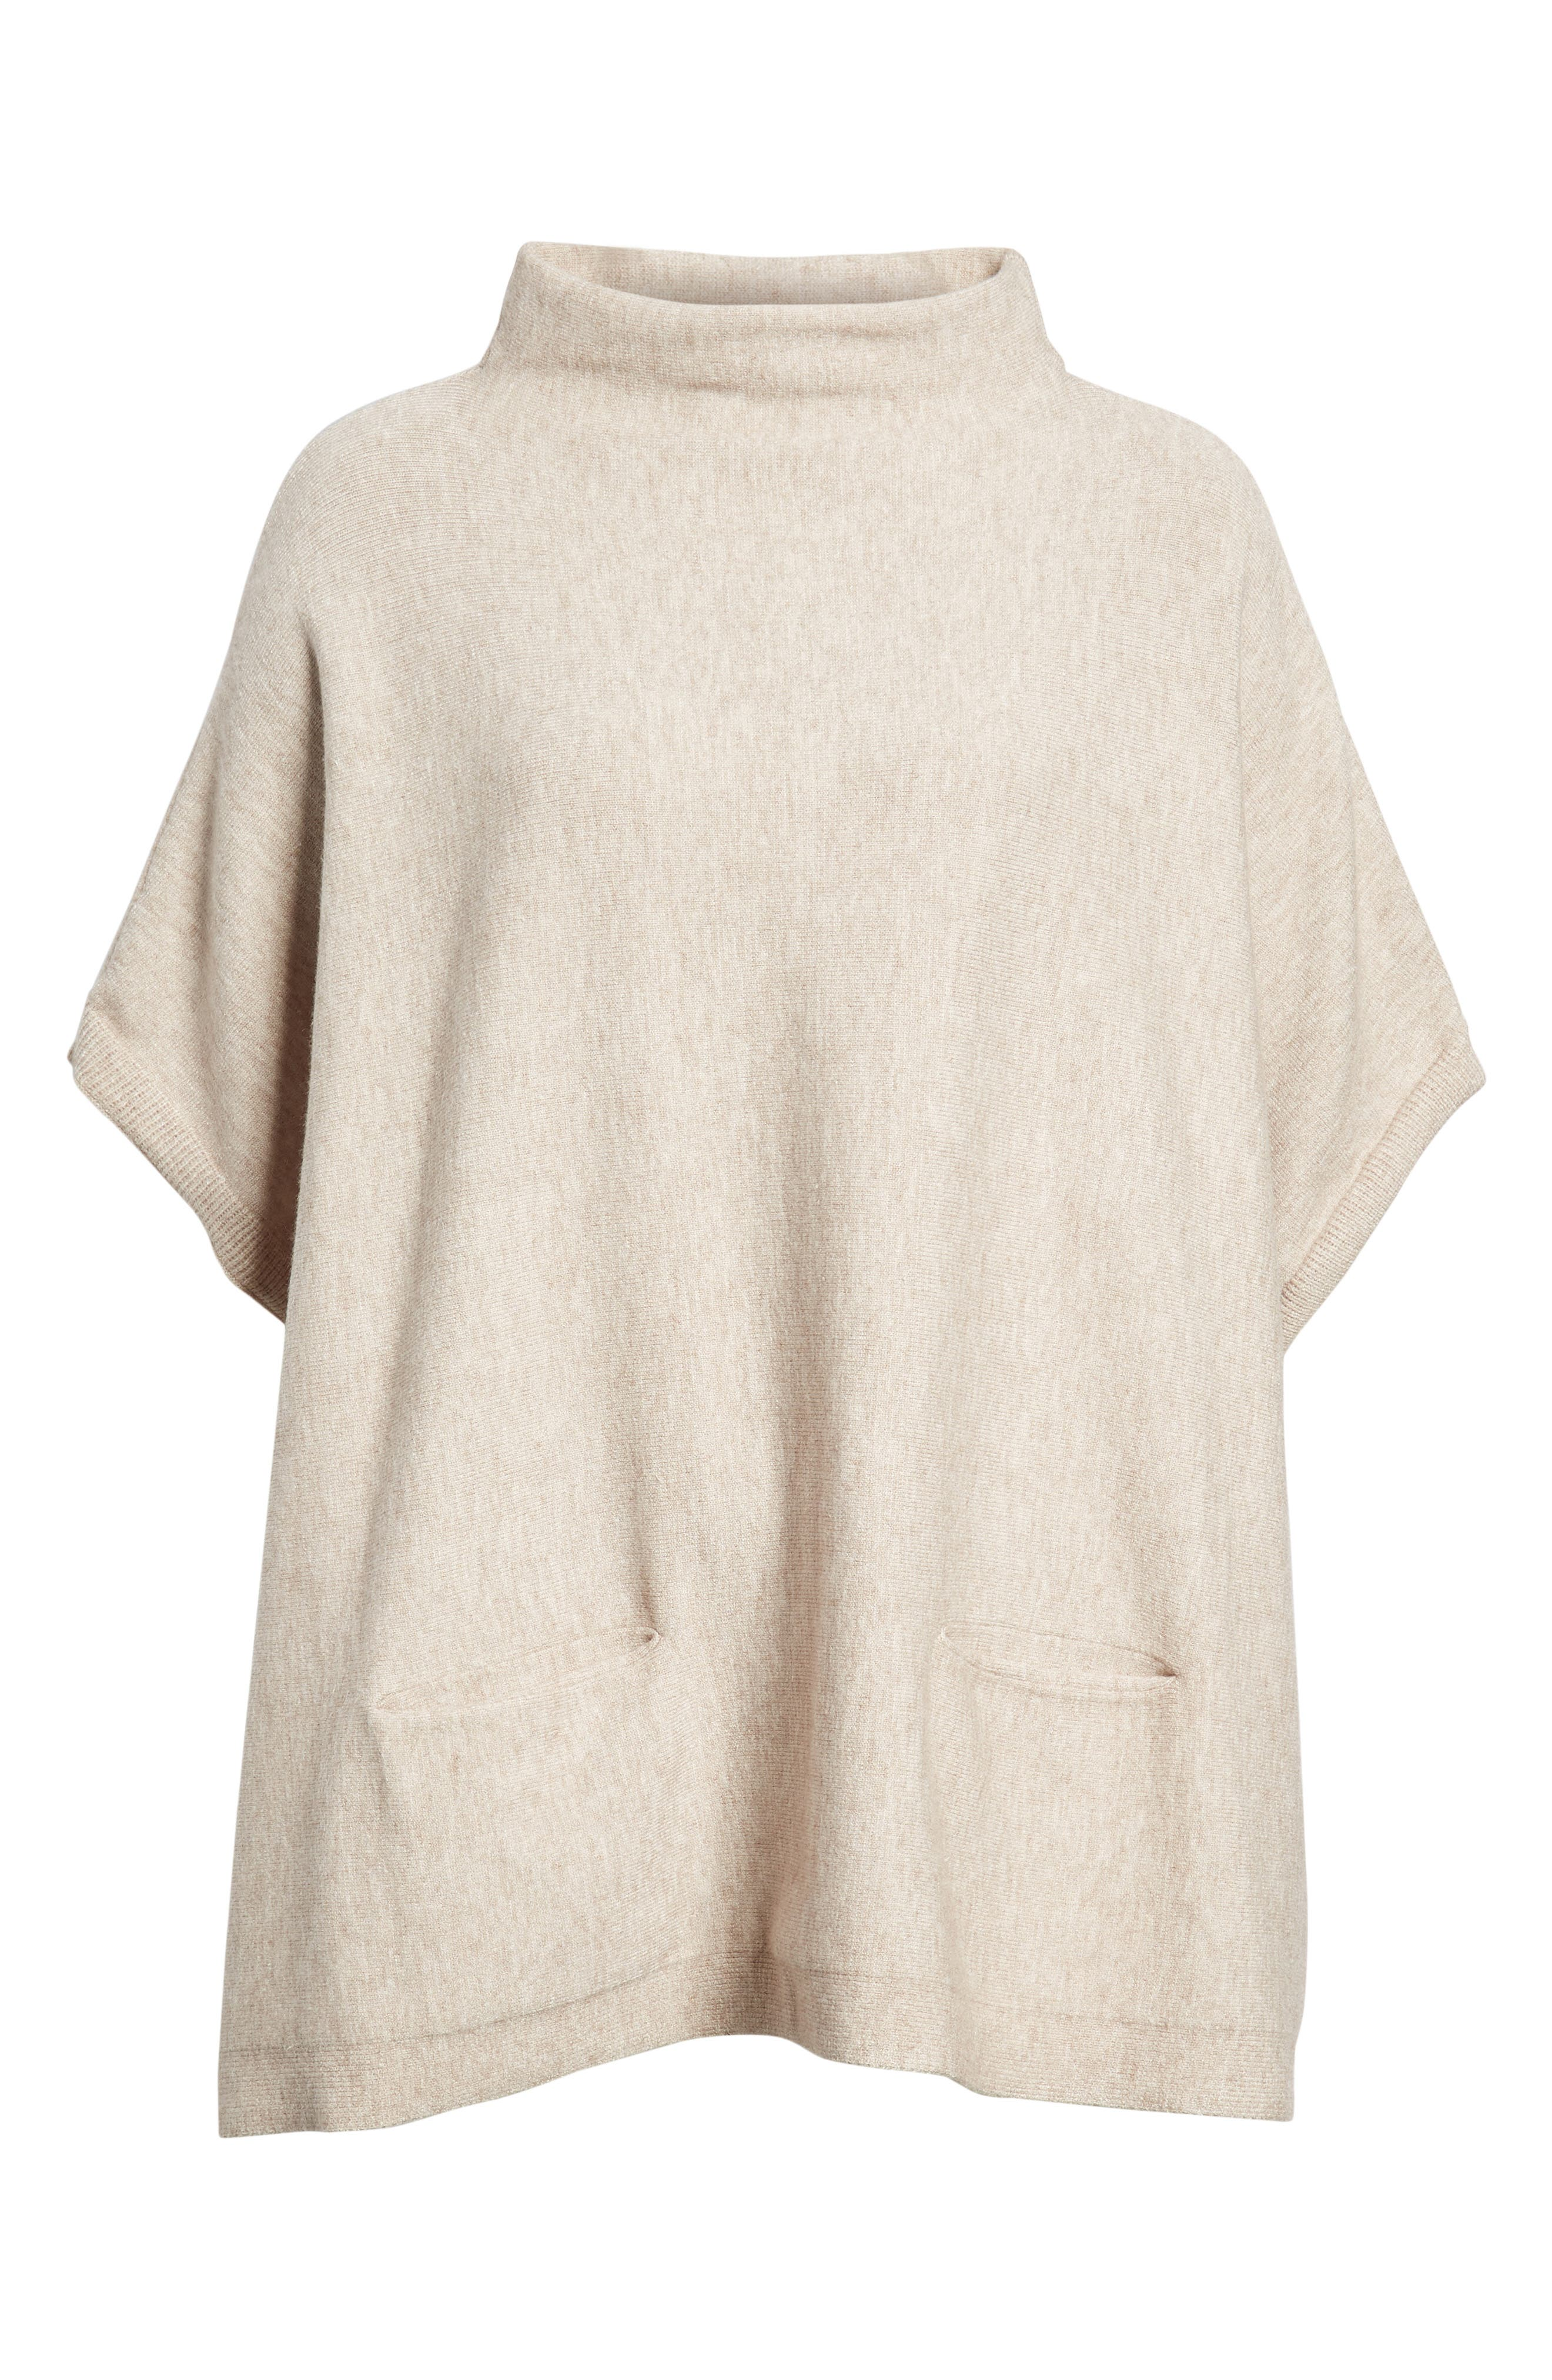 RD Style Boxy Pocket Sweater,                         Main,                         color, Oatmeal